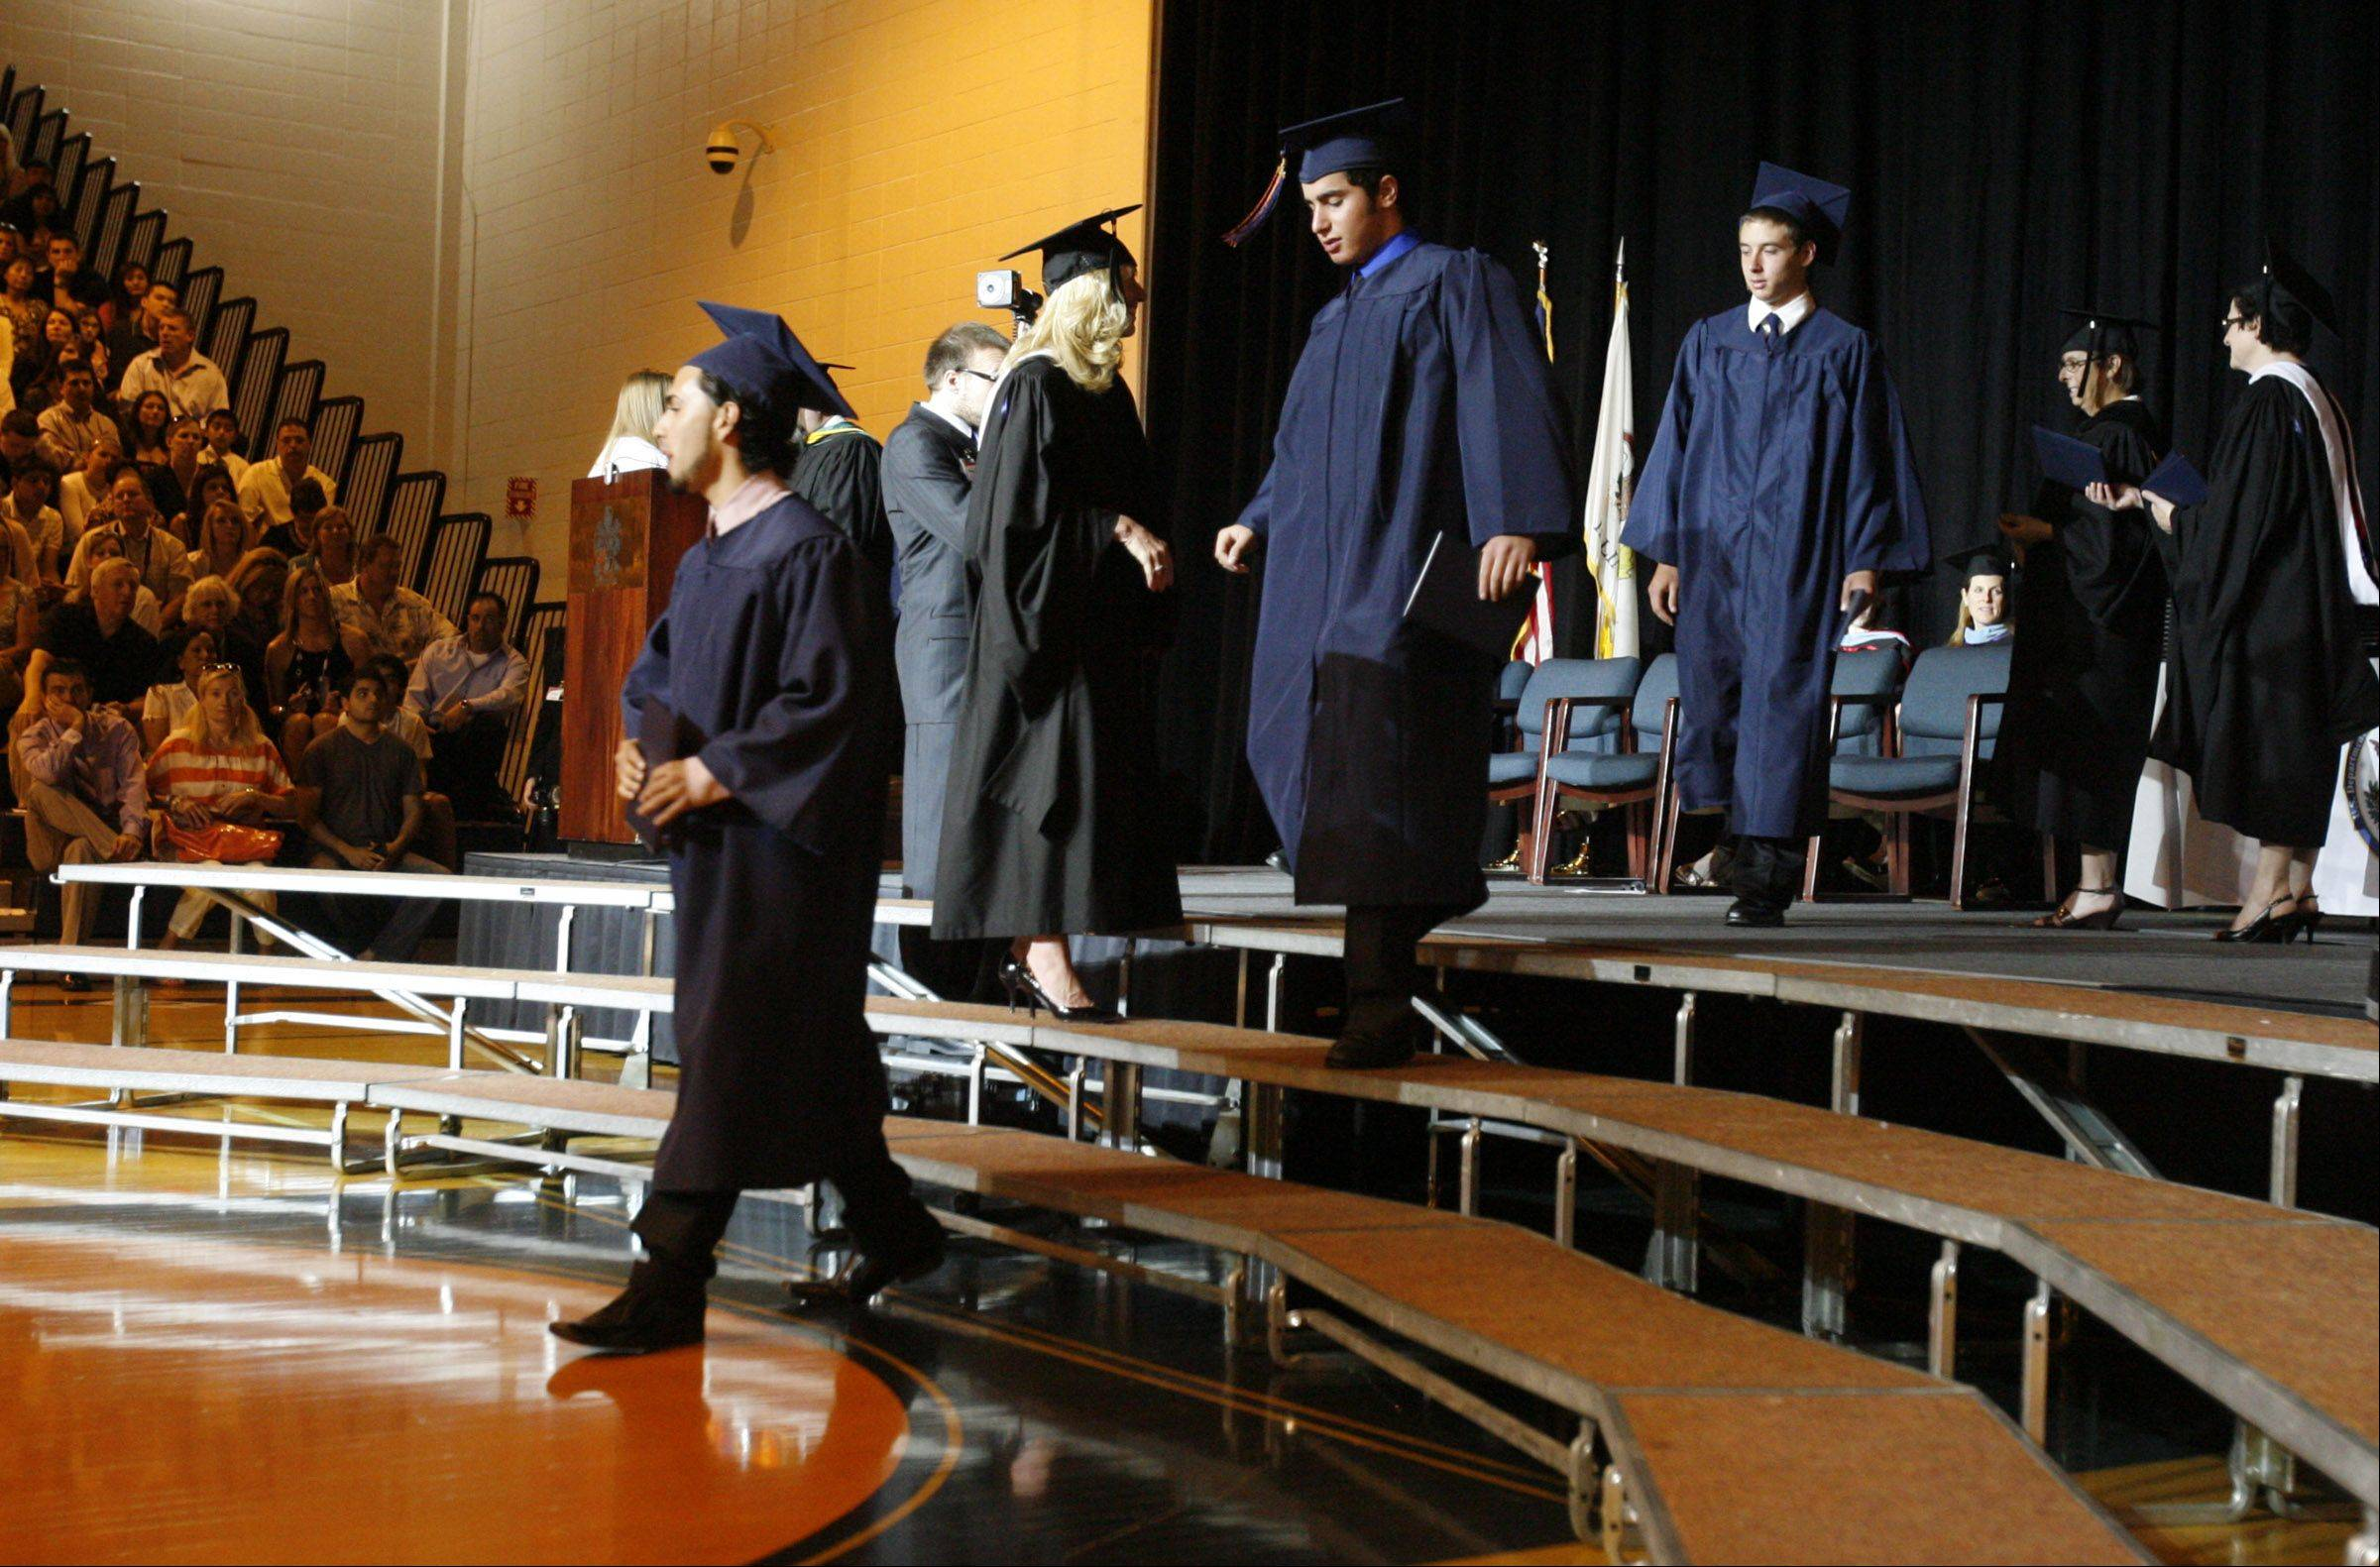 Images from the Buffalo Grove High School graduation on Sunday, June 3rd in Buffalo Grove.